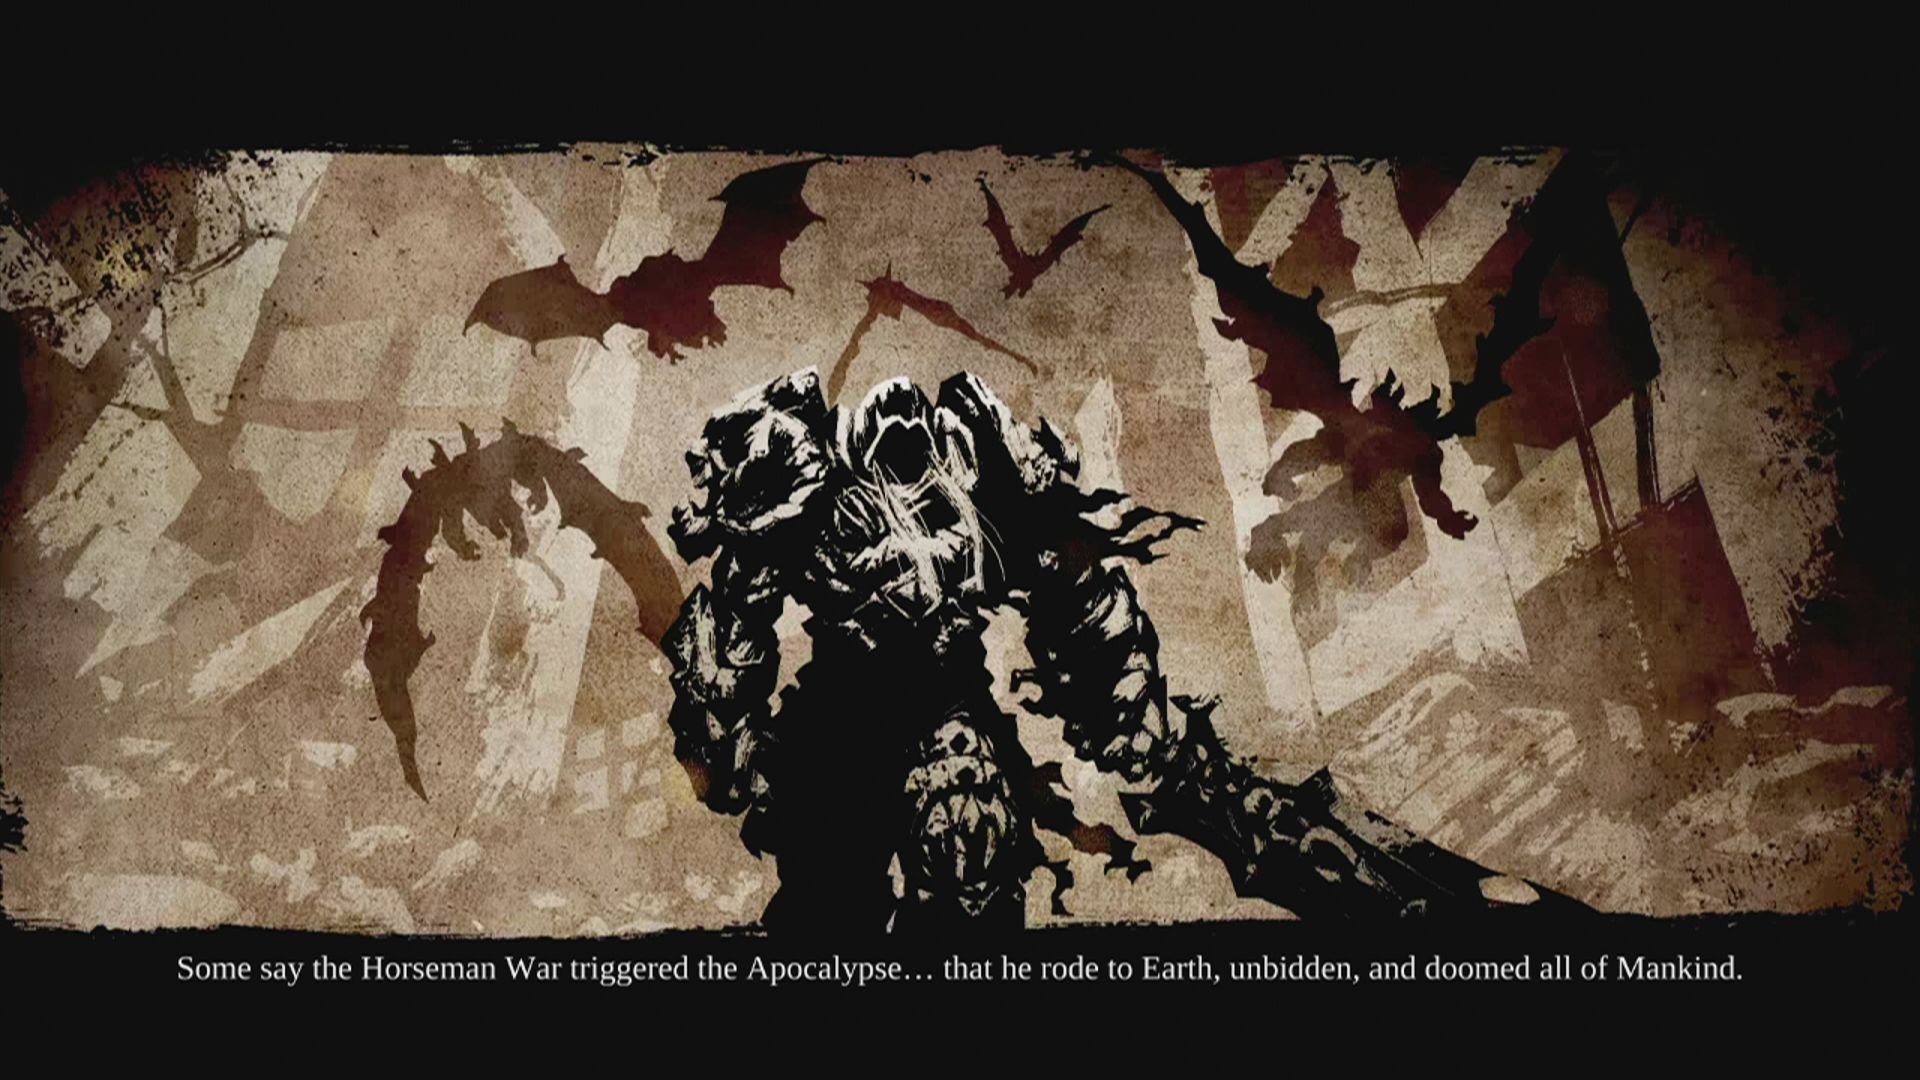 Darksiders II Xbox 360 Screen from the introduction